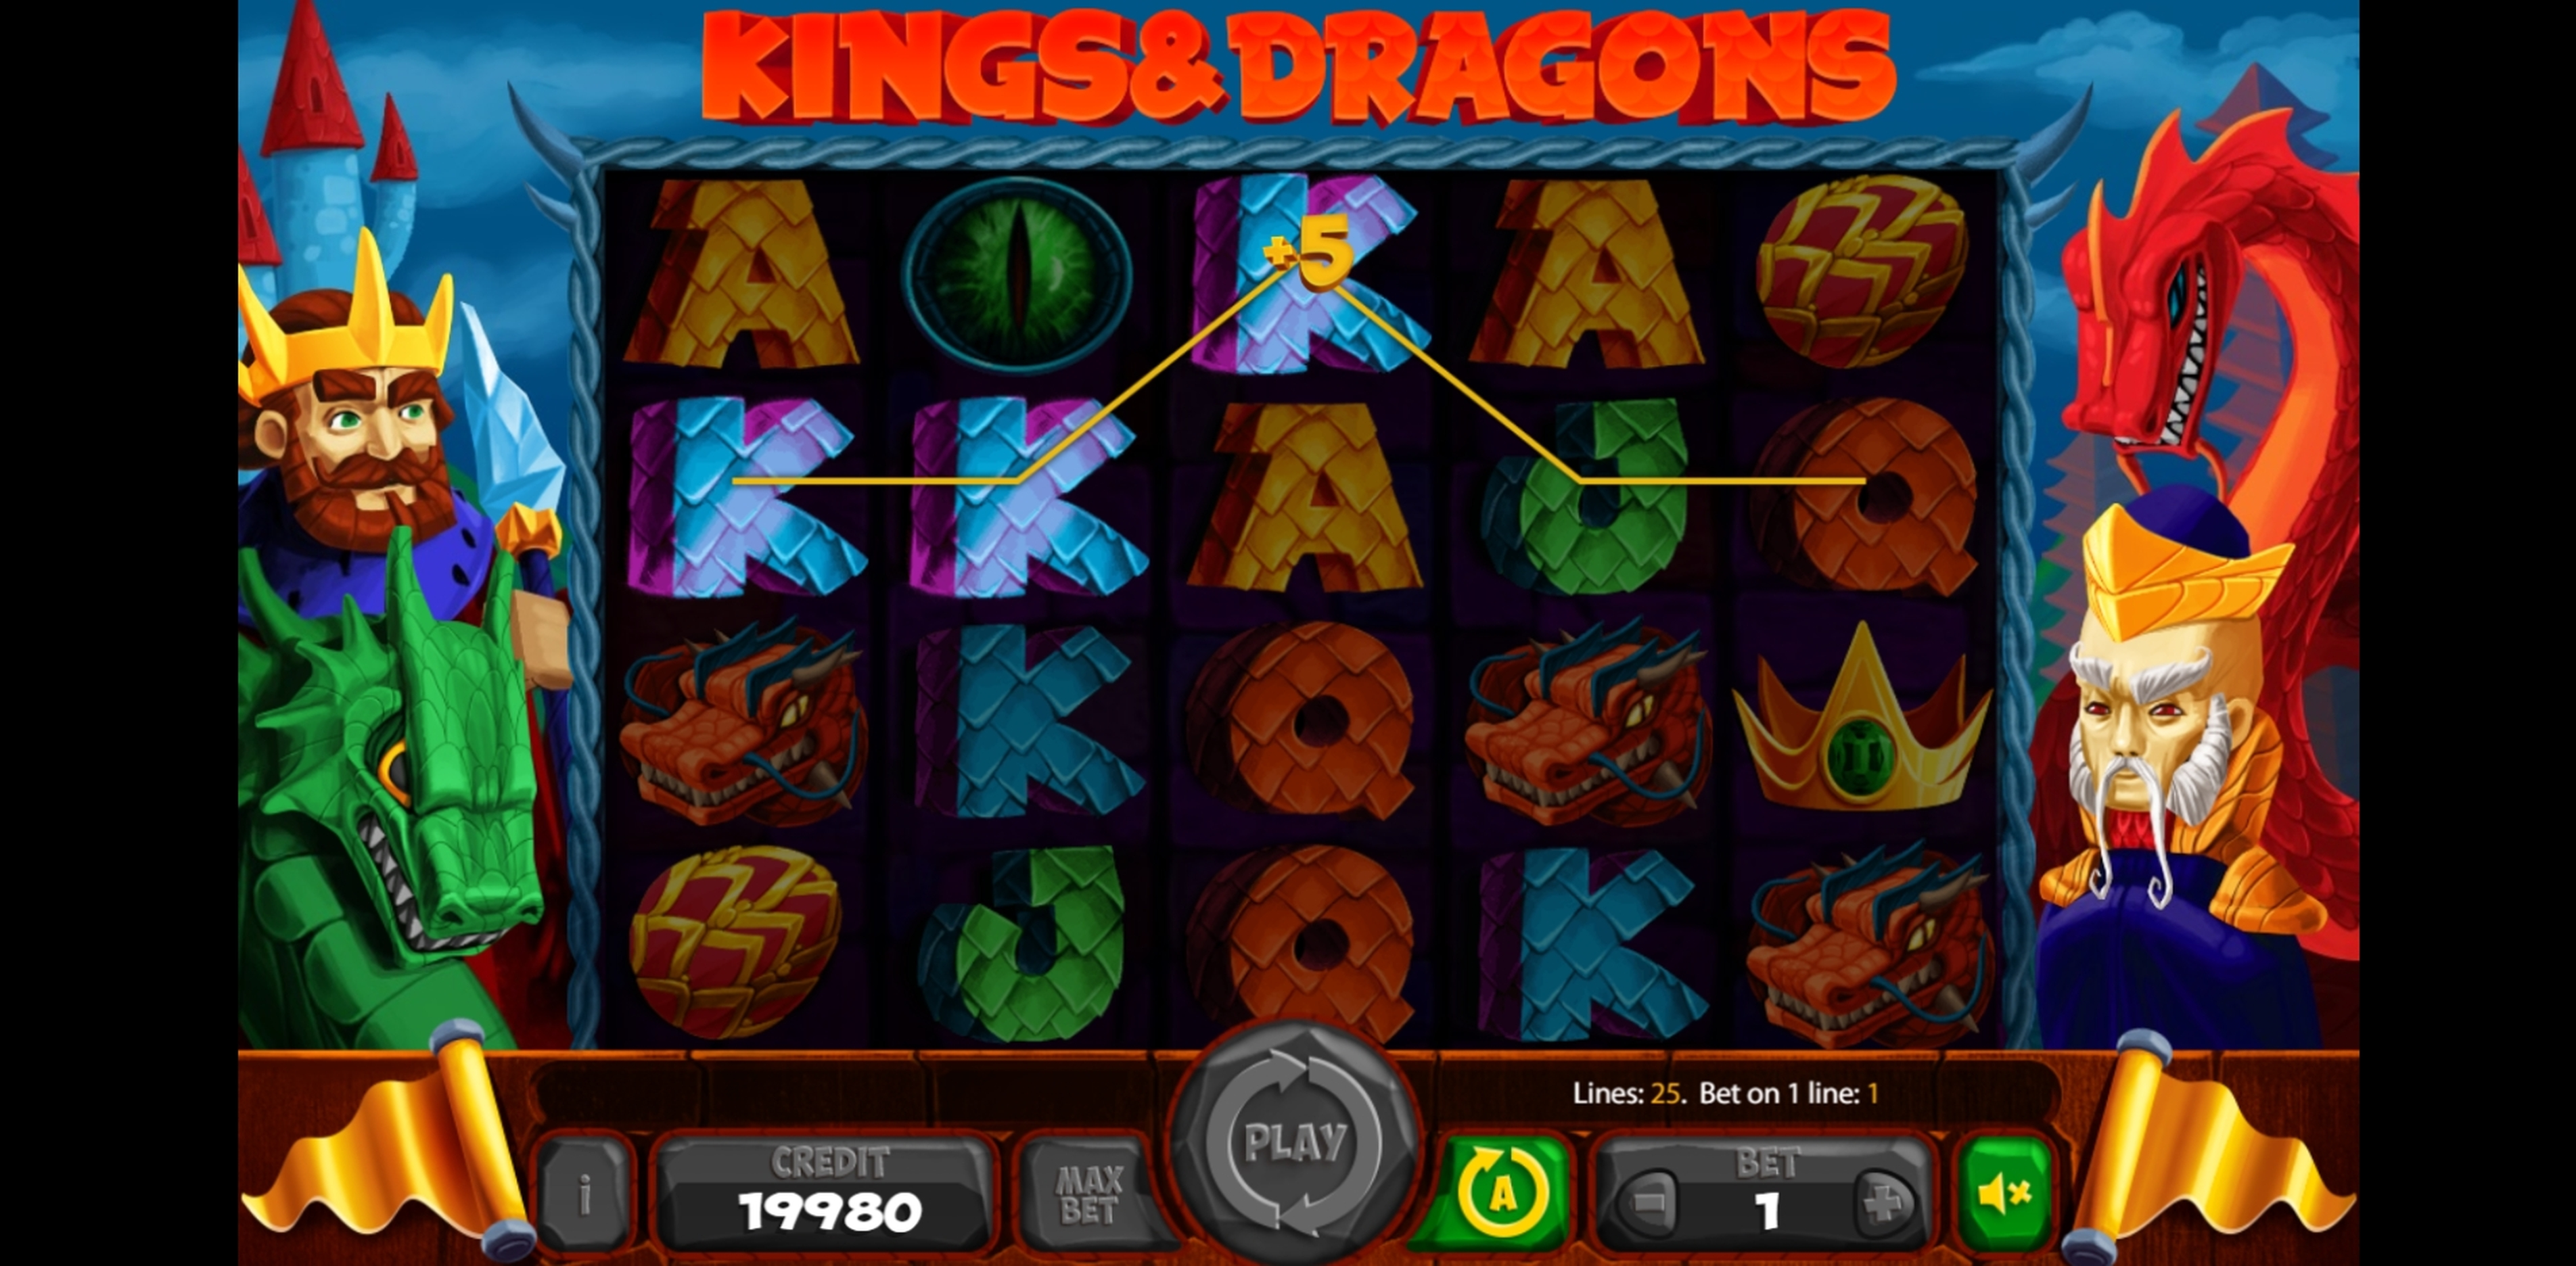 Win Money in Kings And Dragons Free Slot Game by X Card